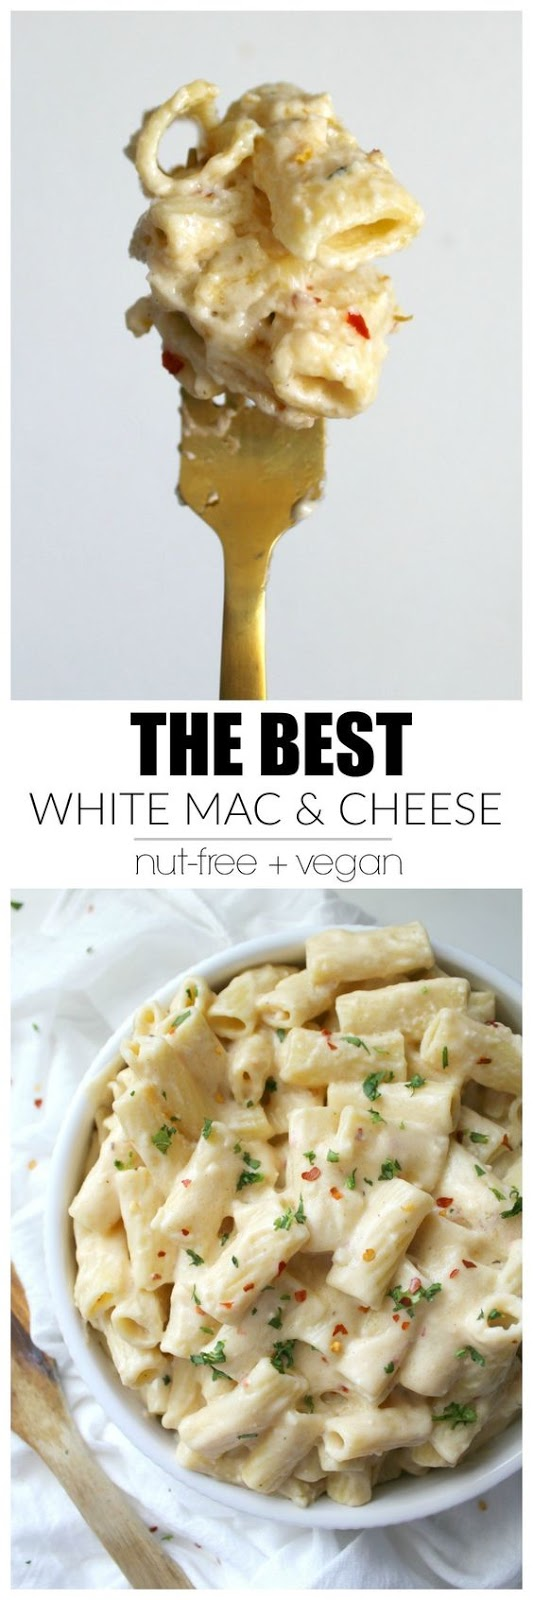 Creamy and comforting - this is hands down the Best Vegan White Mac and Cheese! This only takes 20 minutes to put together and is a crowd pleaser!